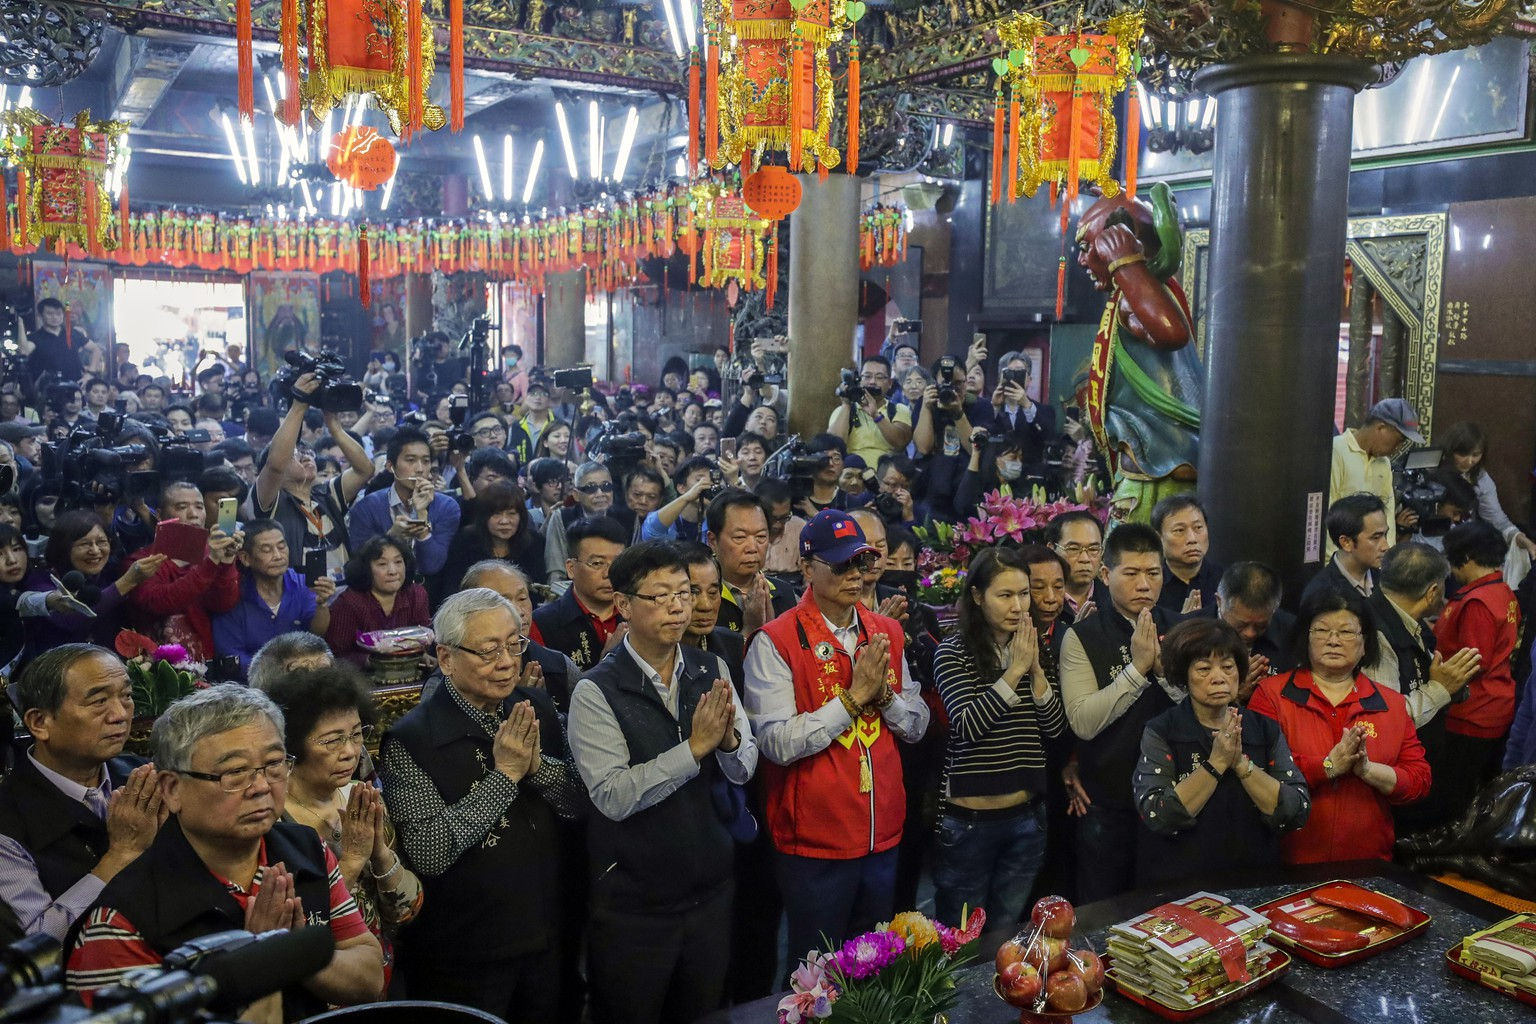 epa07511155 Foxconn founder Terry Gou (C) prays at a temple in New Taipei city, Taiwan, 17 April 2019. On 16 April, Gou announced that he is  considering to run for Taiwan's presidency in 2020.  EPA/RITCHIE B. TONGO